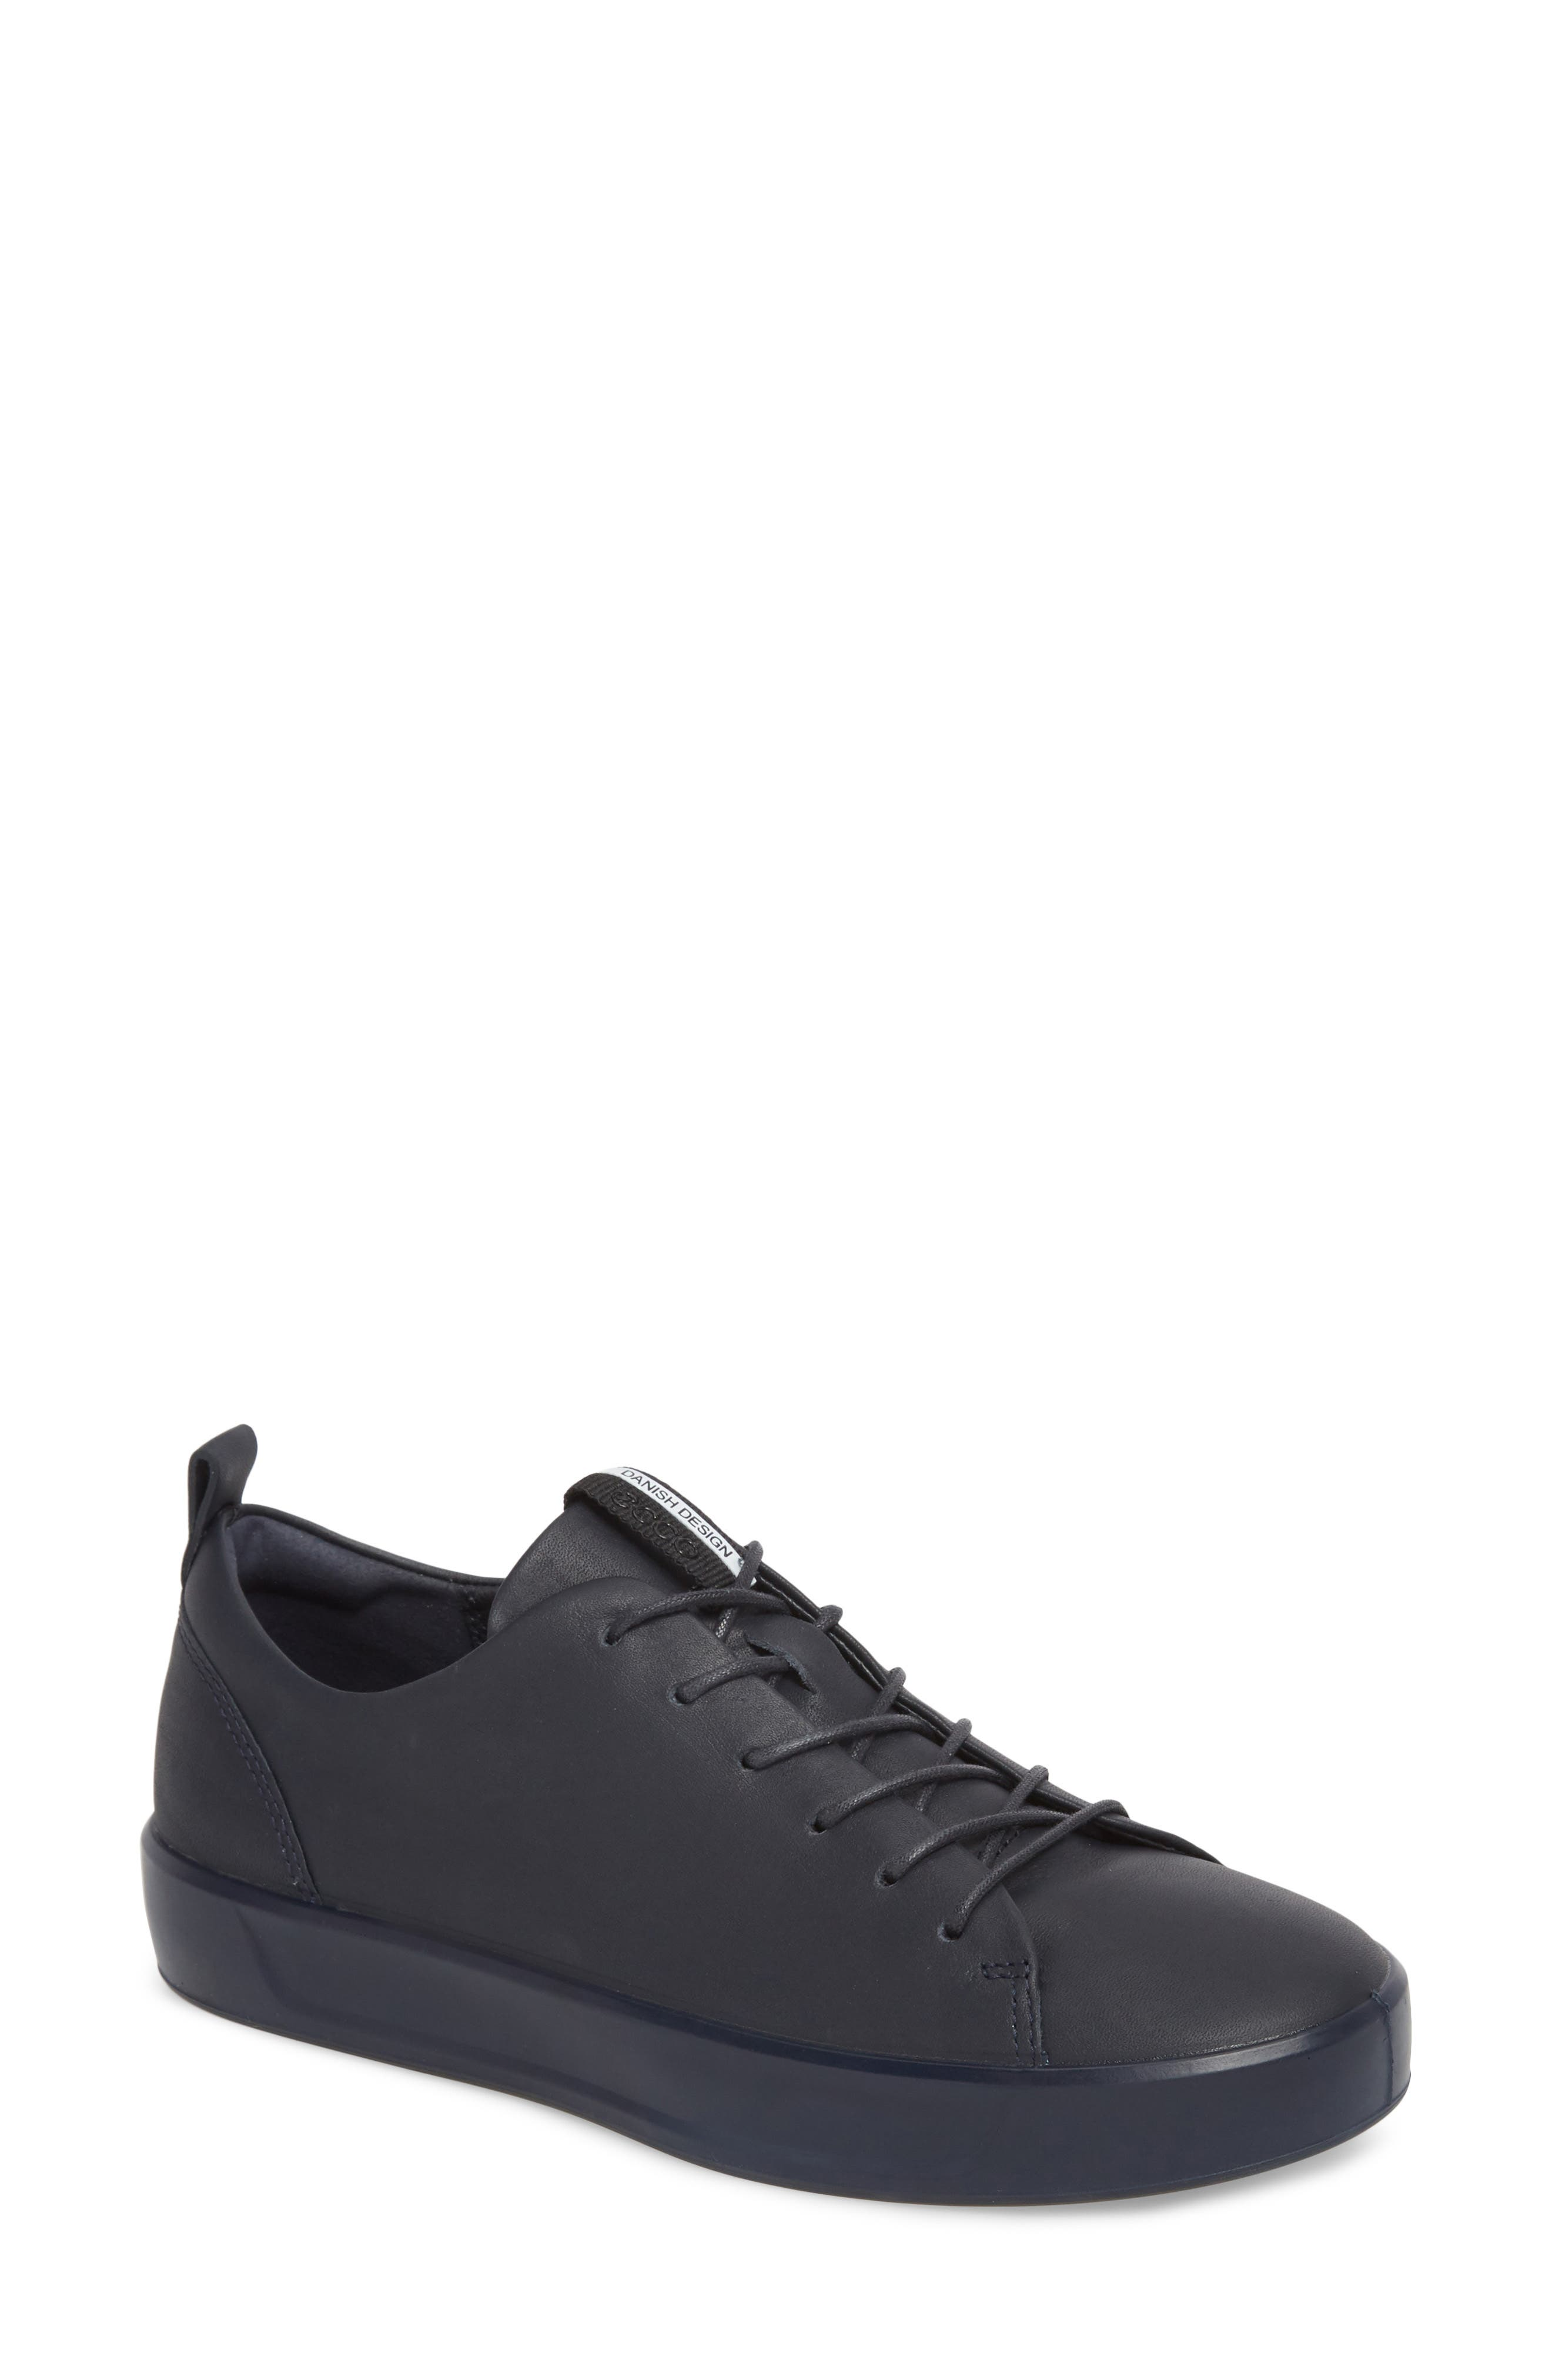 Soft 8 Sneaker,                             Main thumbnail 1, color,                             NIGHT SKY LEATHER